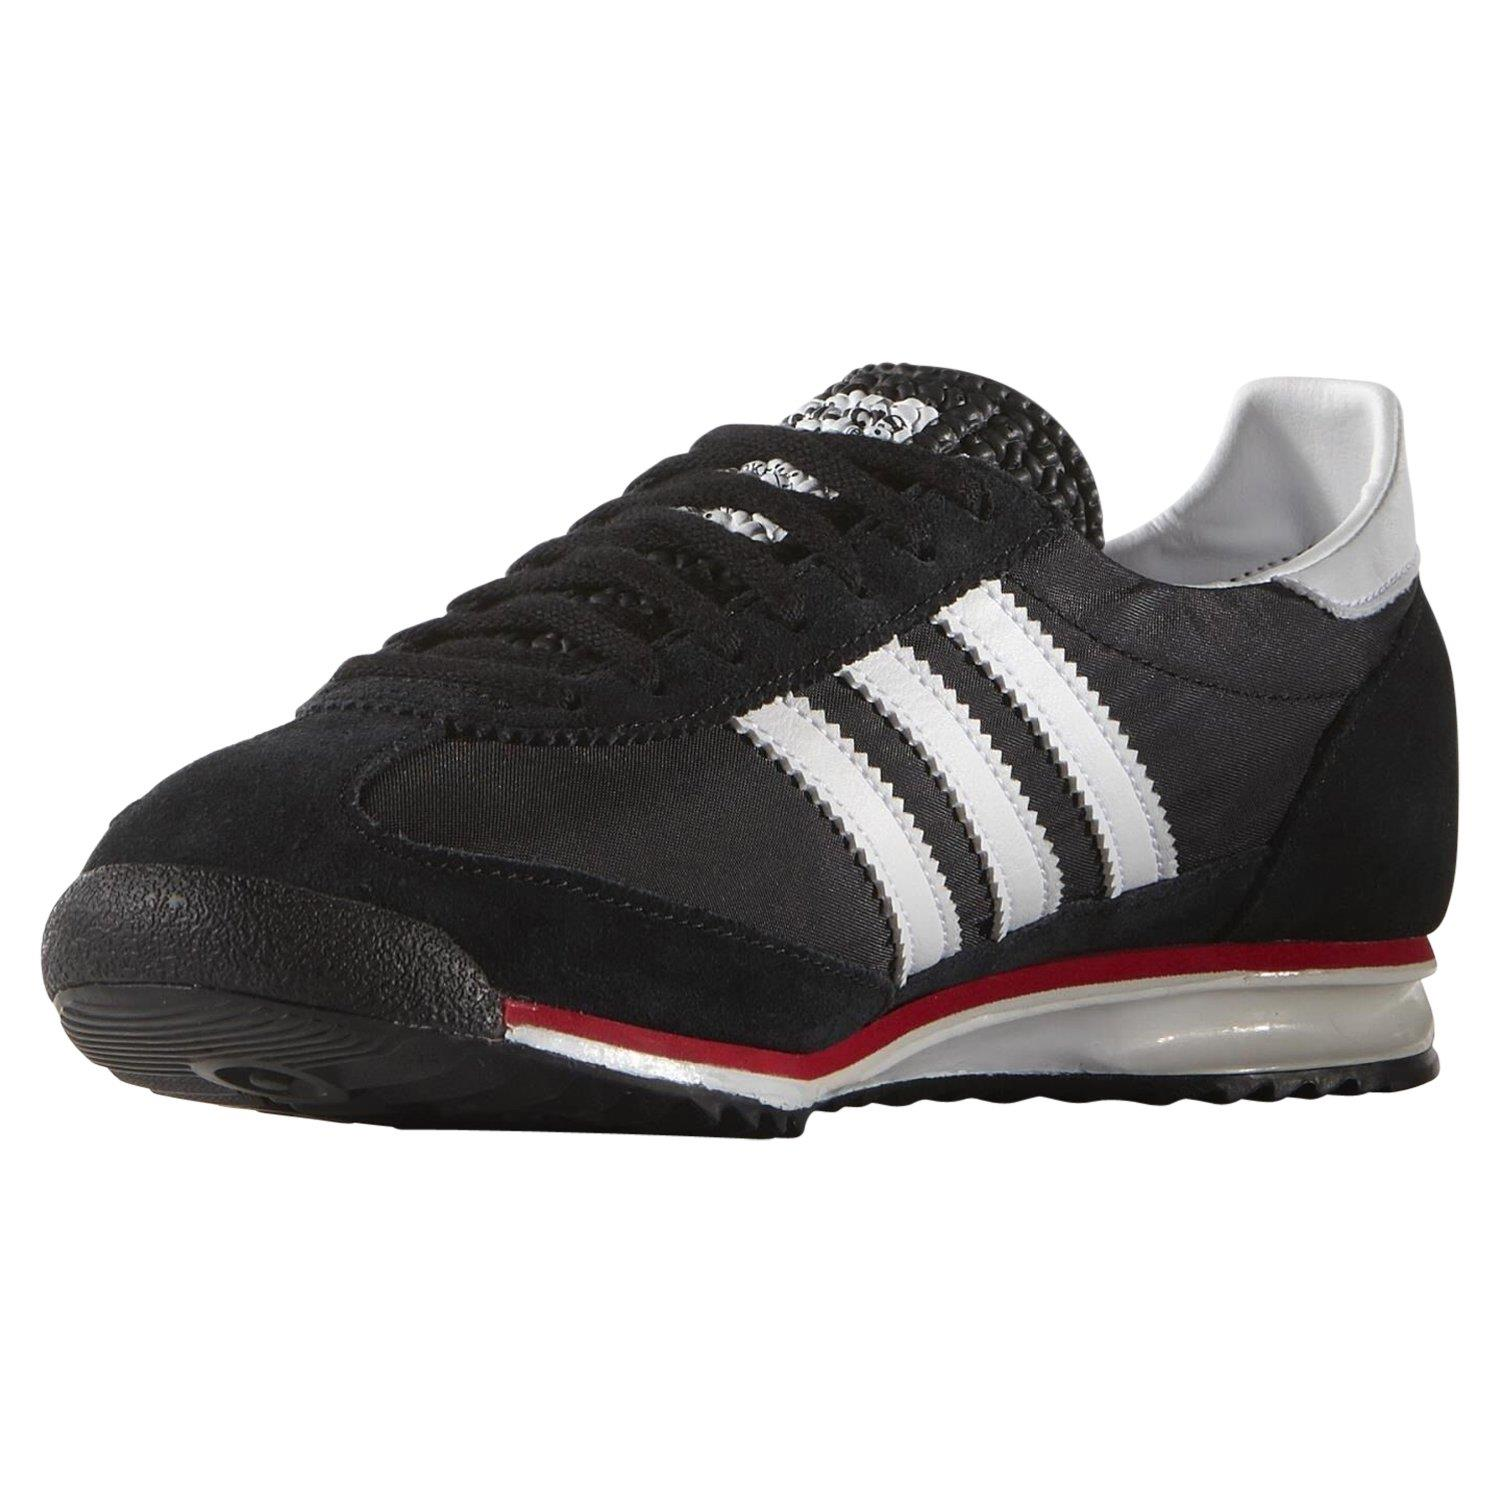 adidas-ORIGINALS-SL72-TRAINERS-MEN-039-S-TREFOIL-RETRO-VINTAGE-RARE-DEADSTOCK-SHOES miniature 4